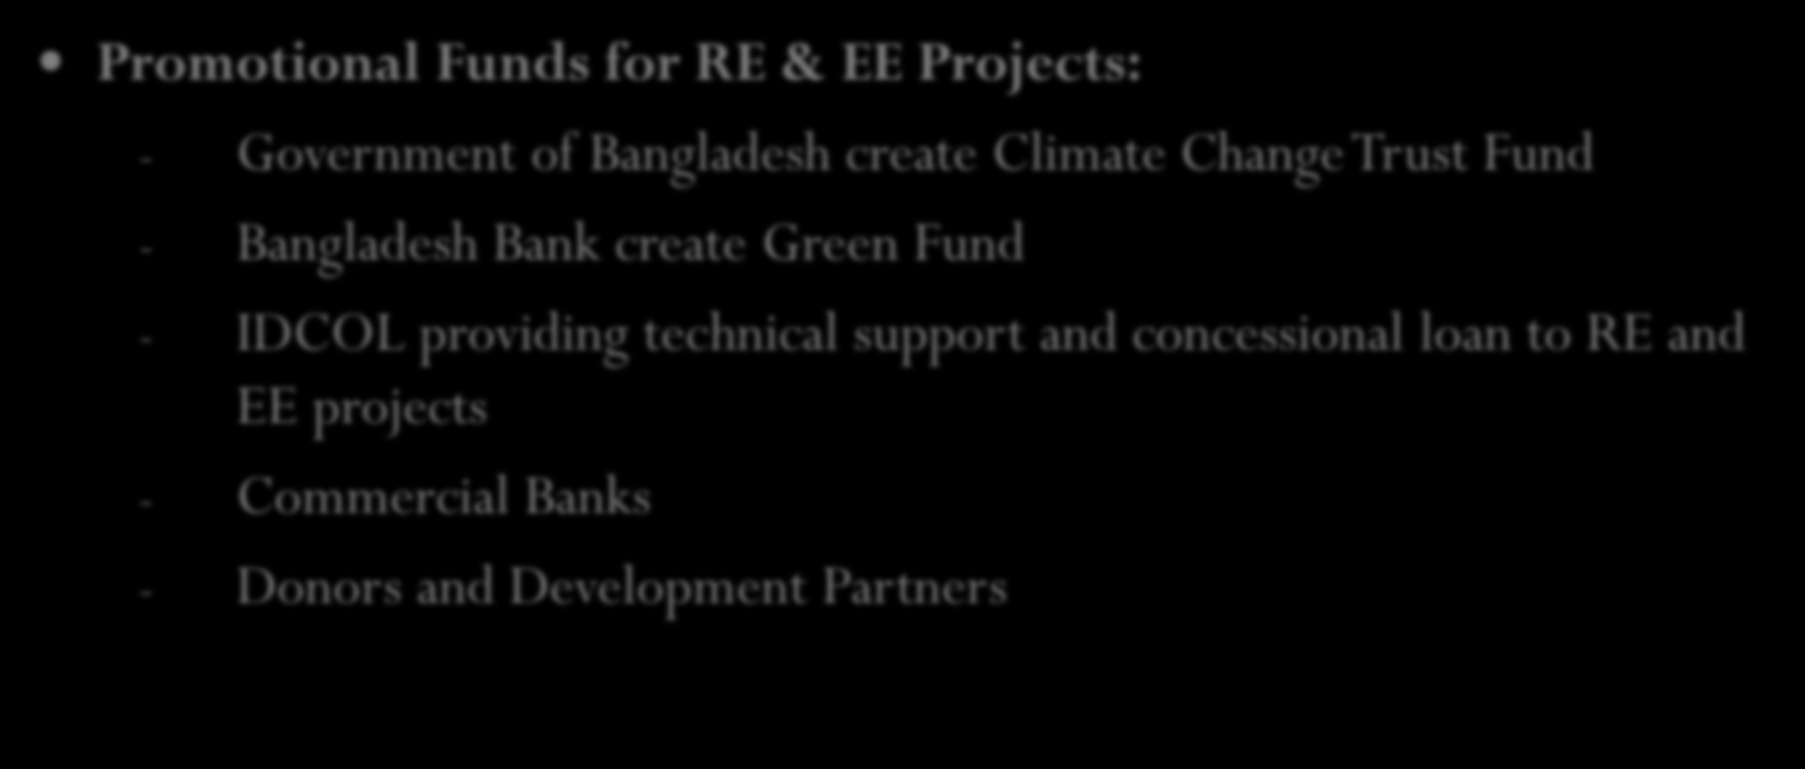 Existing Incentives from Government Promotional Funds for RE & EE Projects: - Government of Bangladesh create Climate Change Trust Fund - Bangladesh